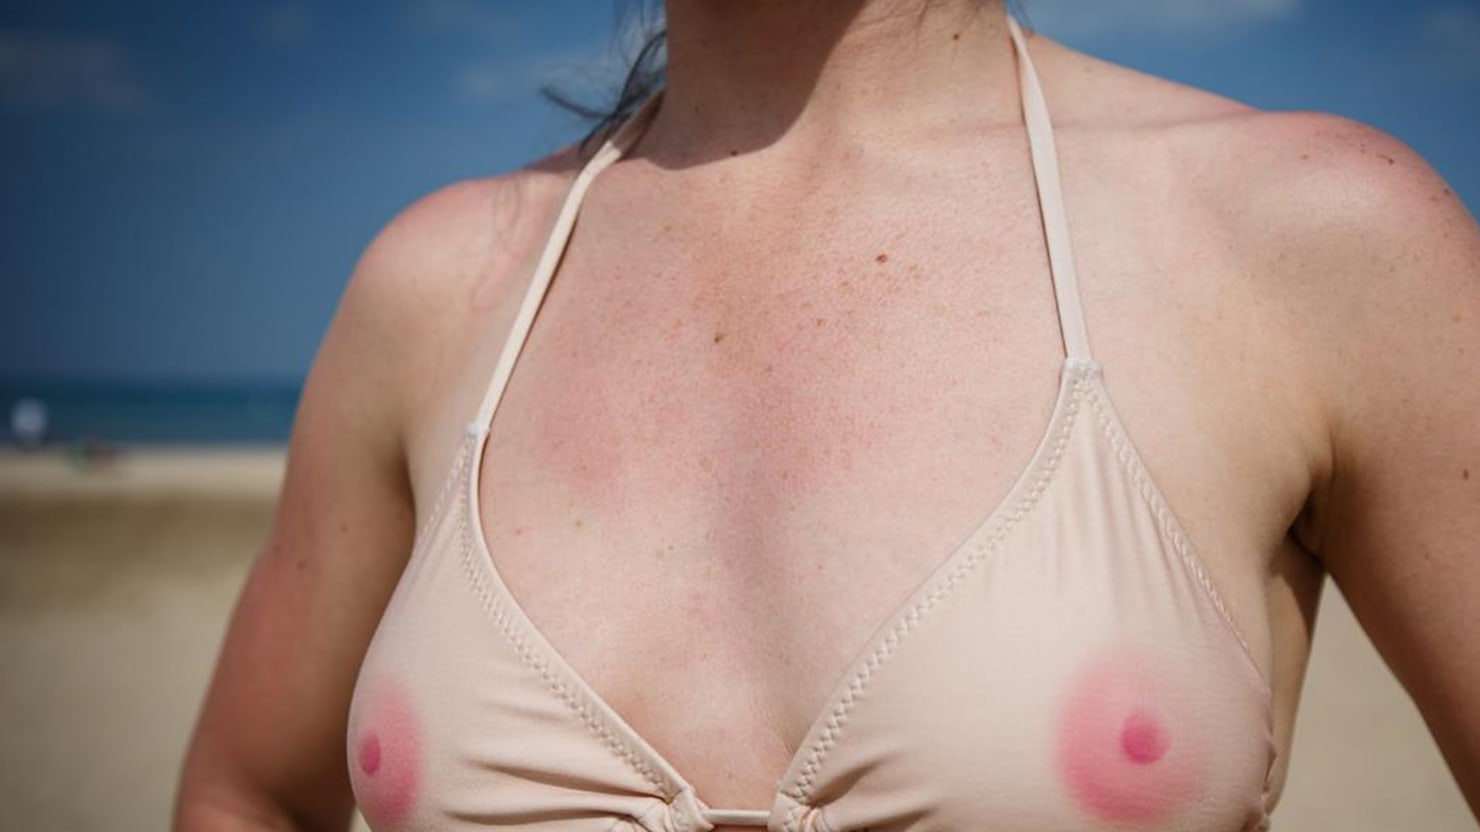 The Tata Top Battles Gender Inequality By Helping Women Wear Nipples Proudly